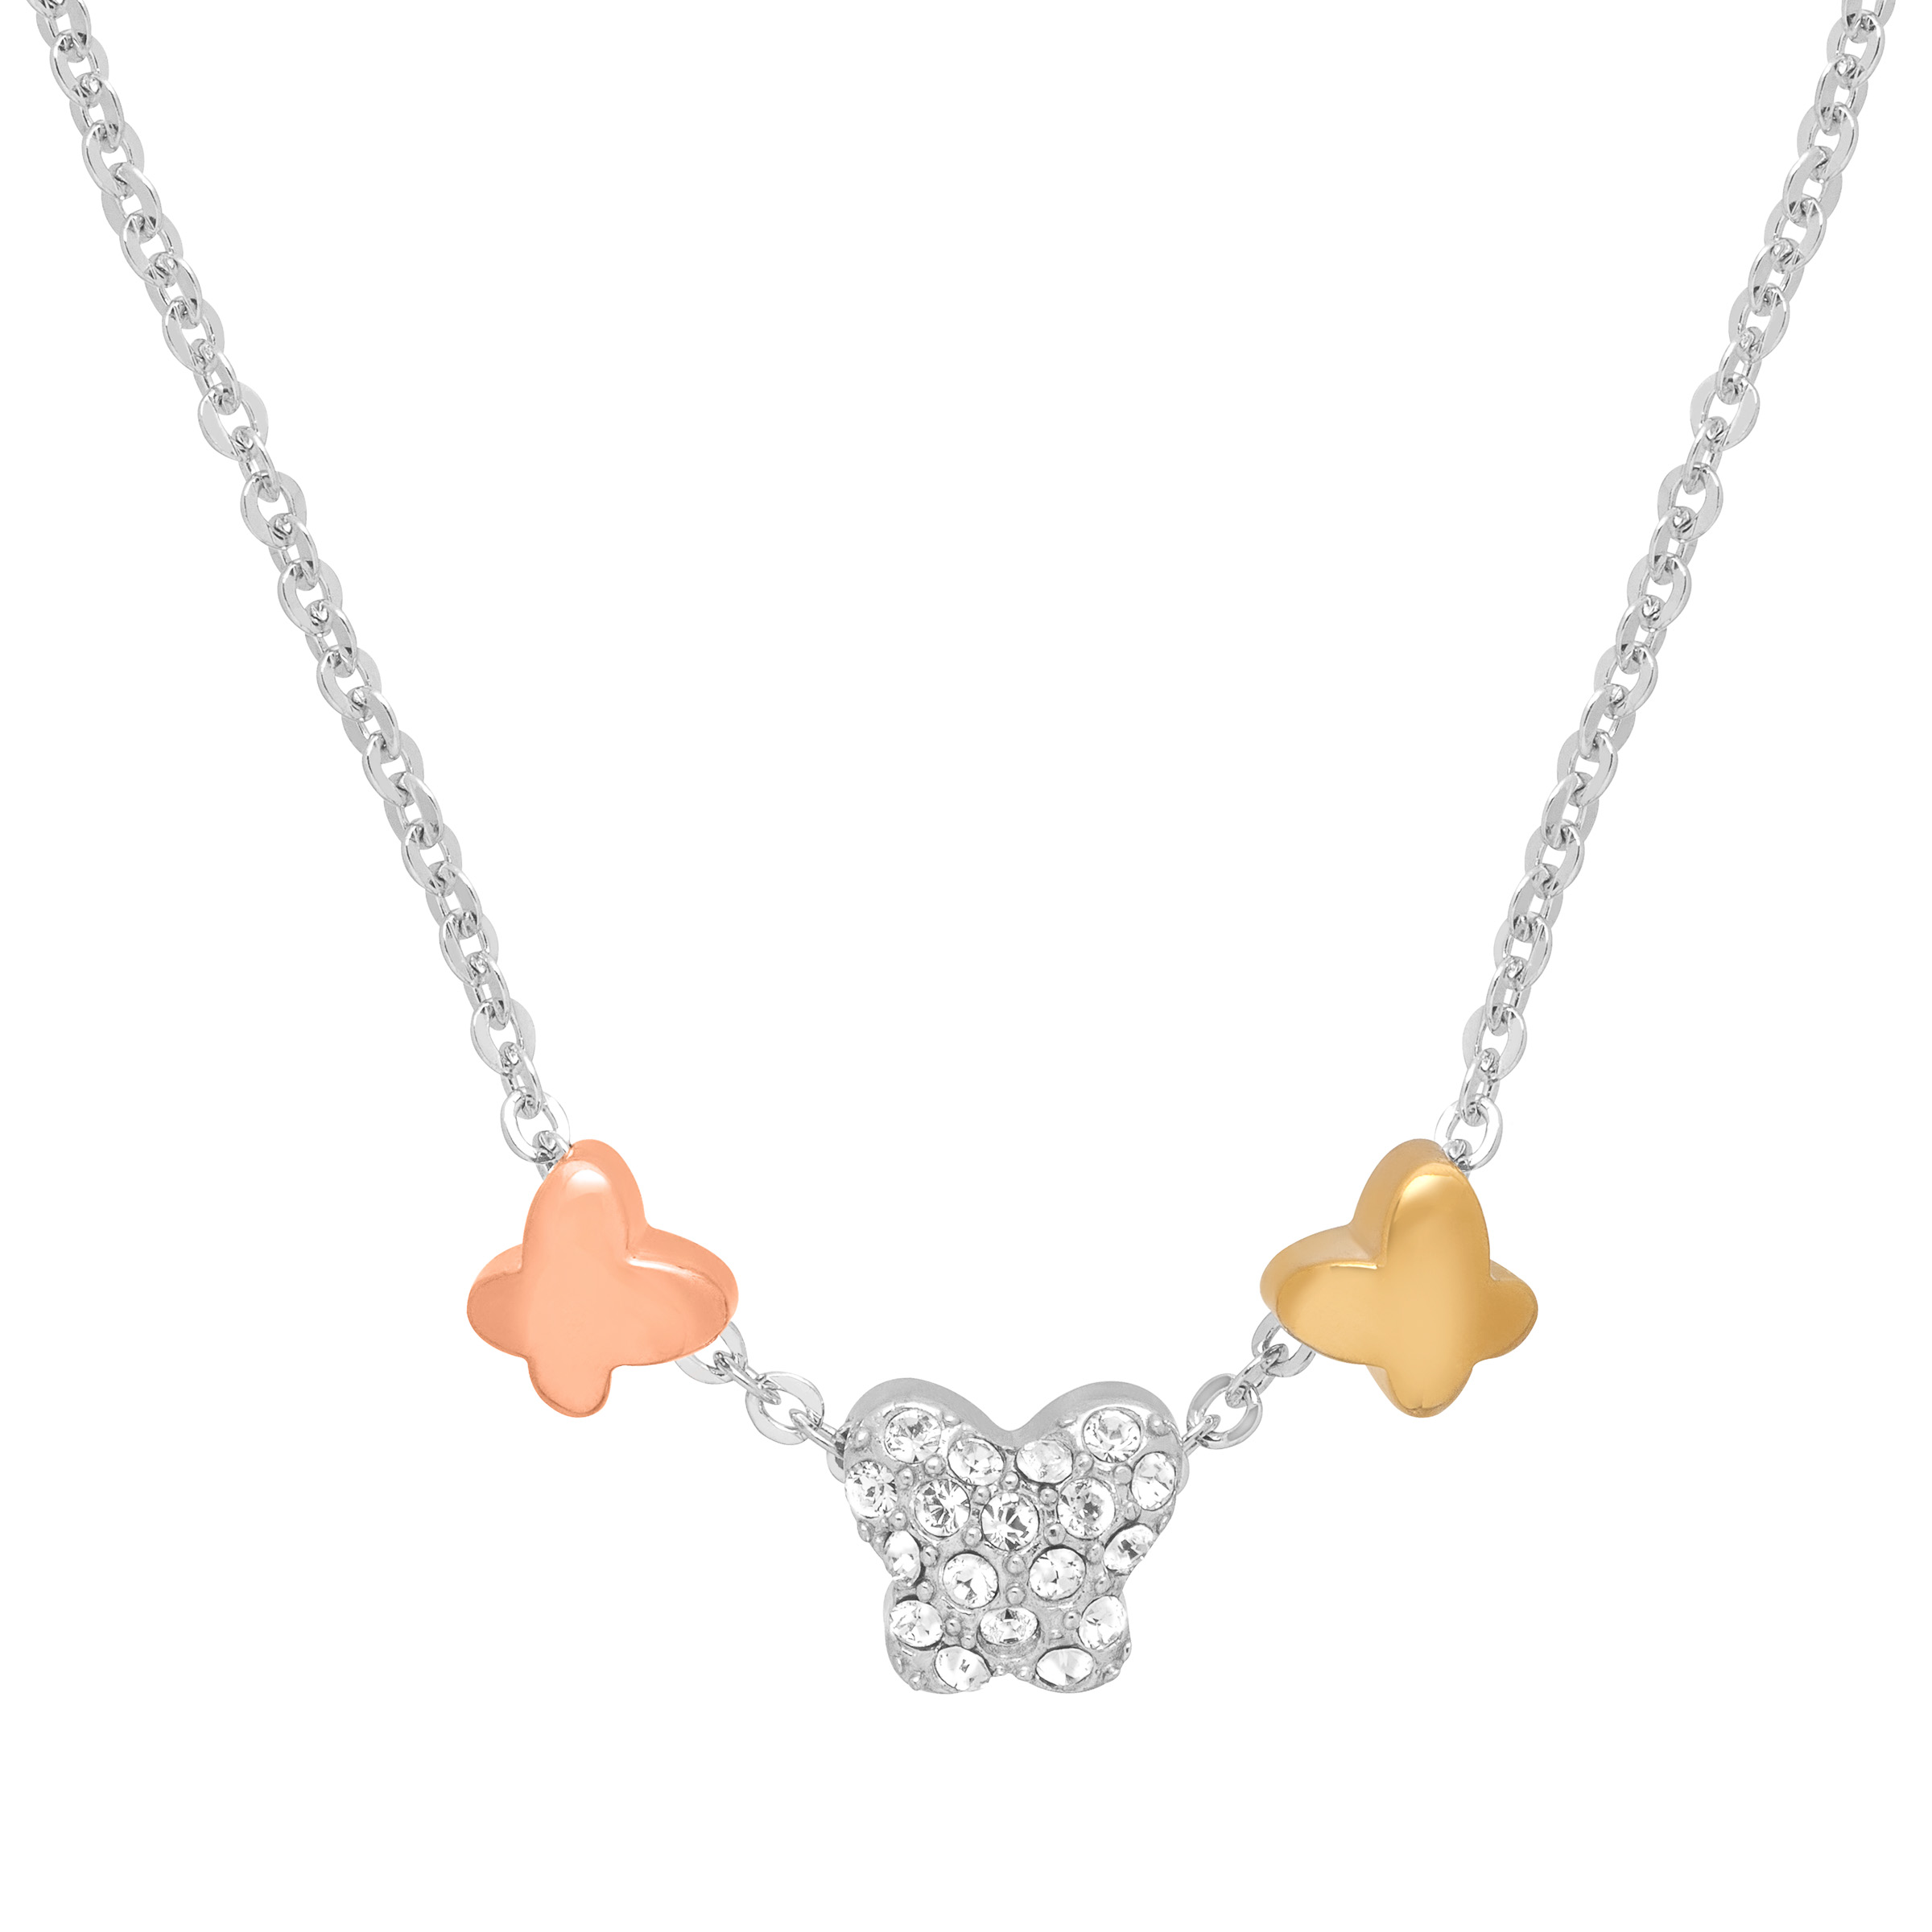 Crystaluxe Butterfly Trio Necklace with Swarovski Crystals in Sterling Silver & 14kt Gold over Bronze